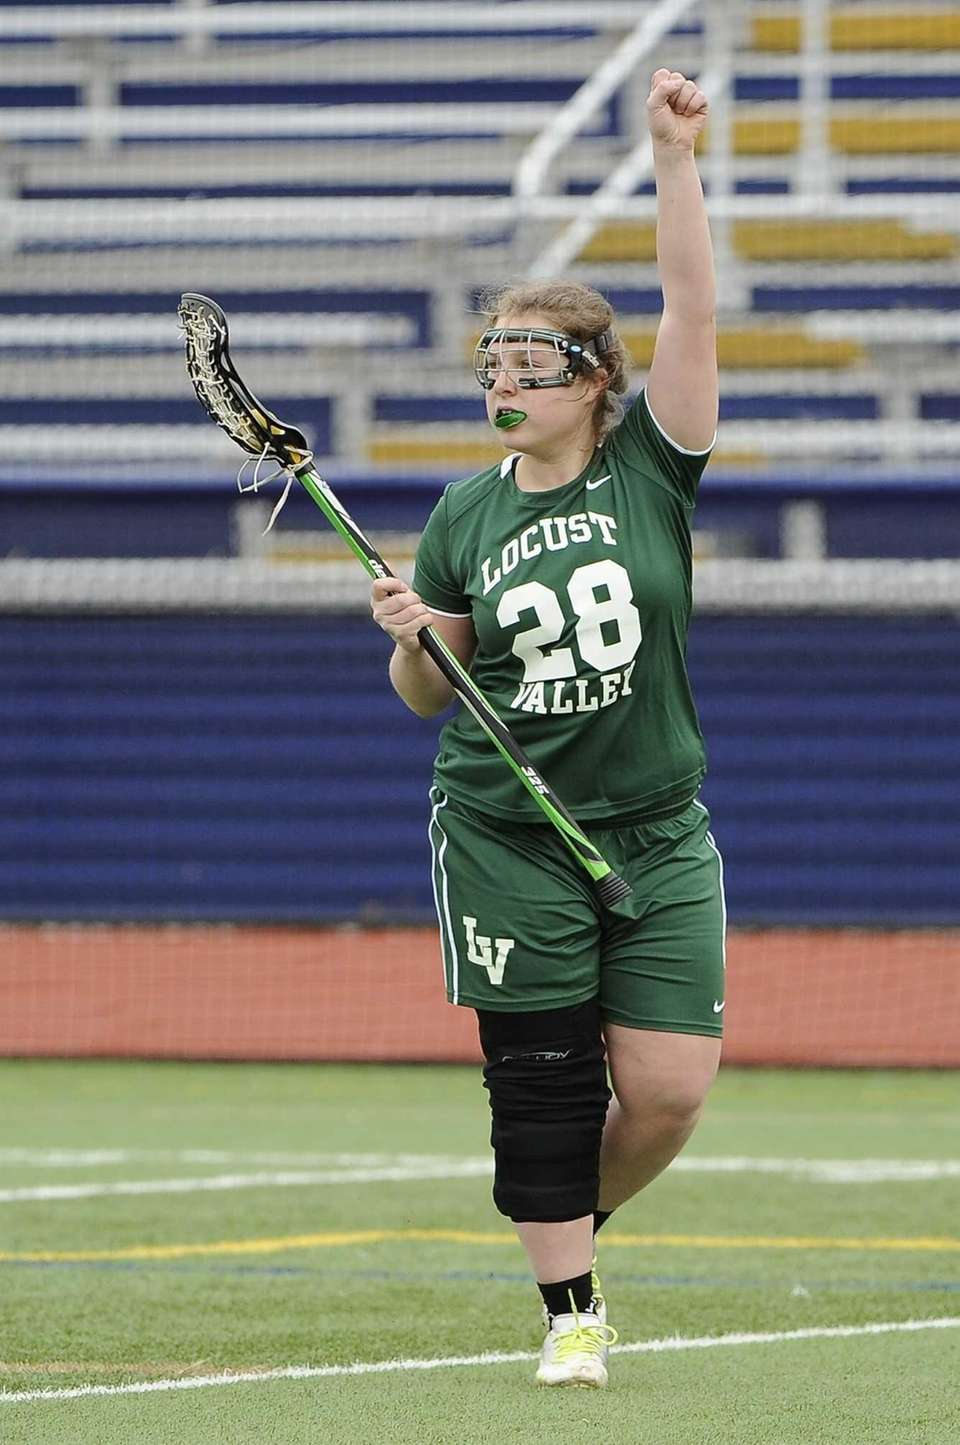 Locust Valley's Julia Palermo calls a play against